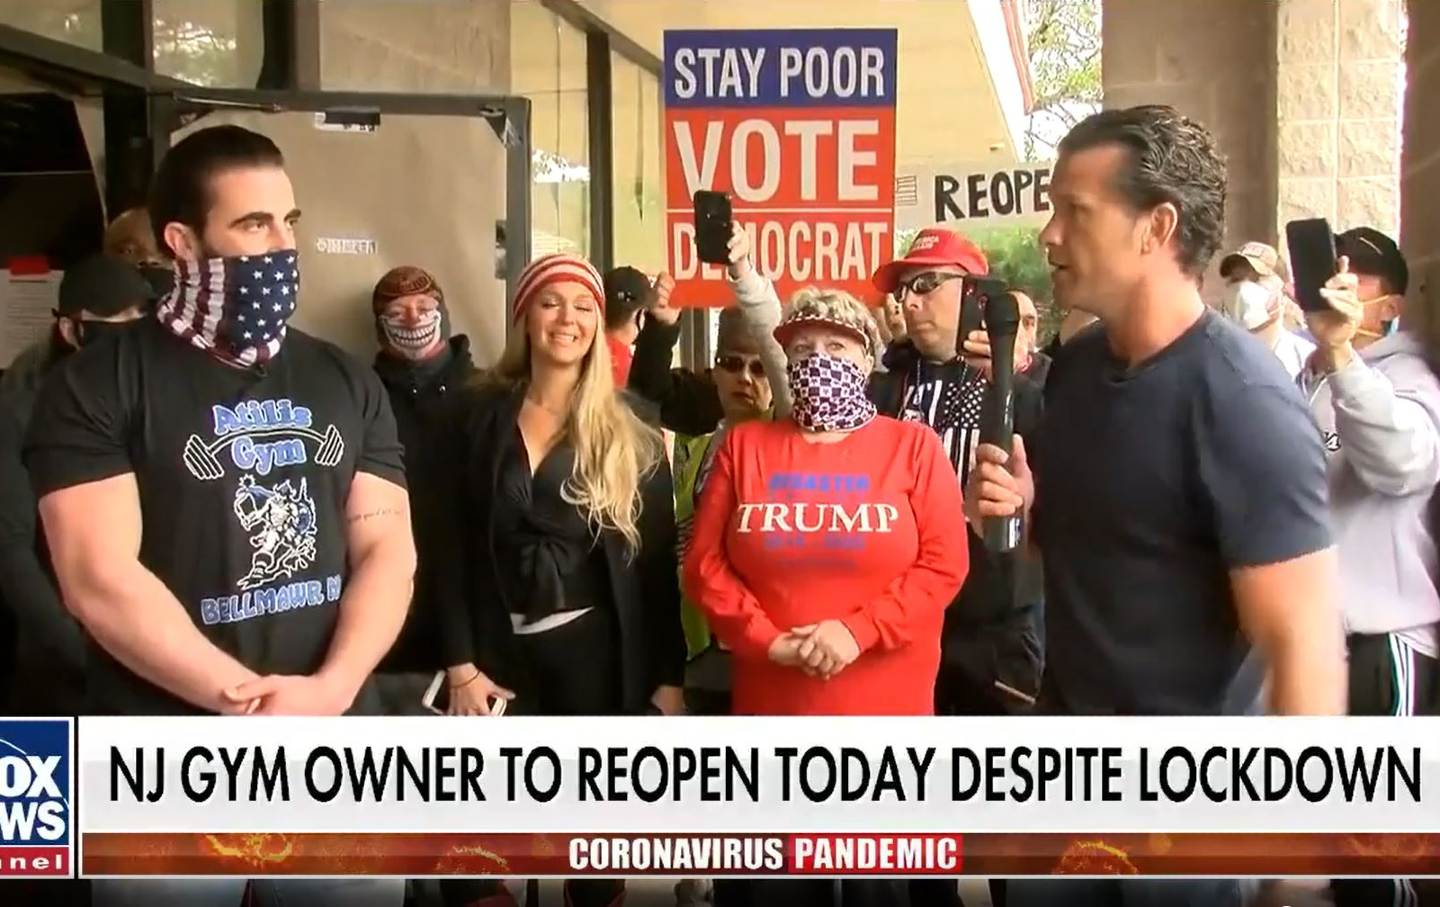 a Fox news anchor interviews a gym owner with a crowd behind him